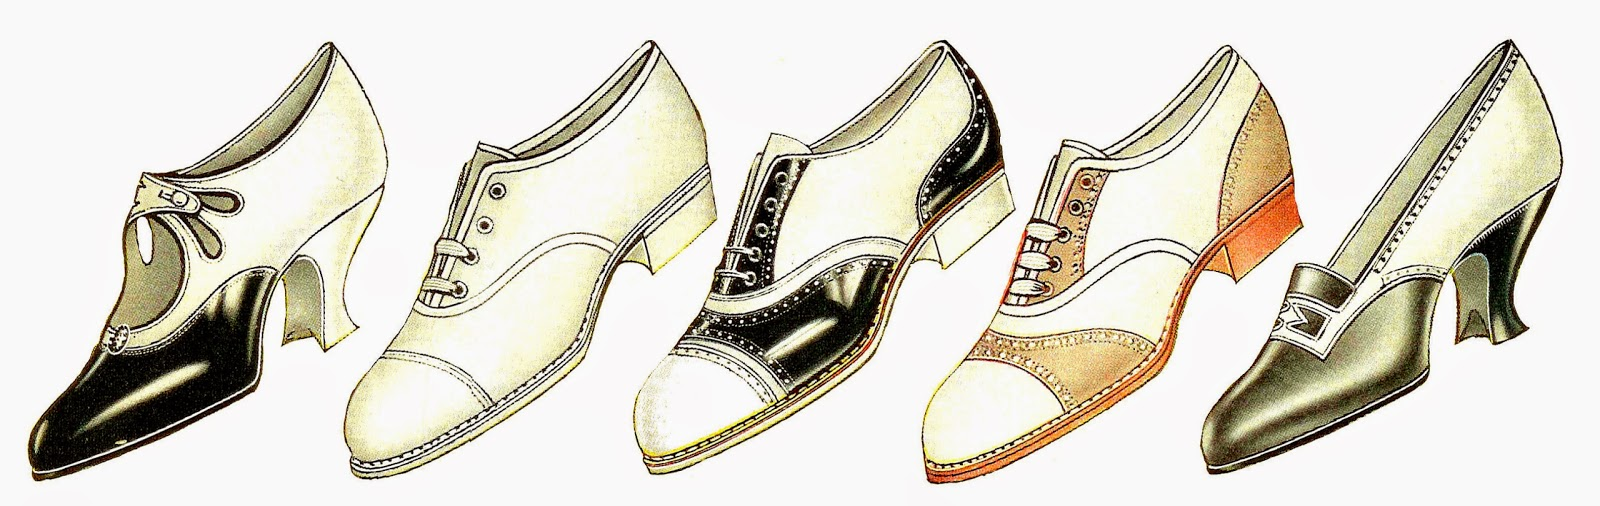 Vintage Shoe Clipart - Clipart Kid